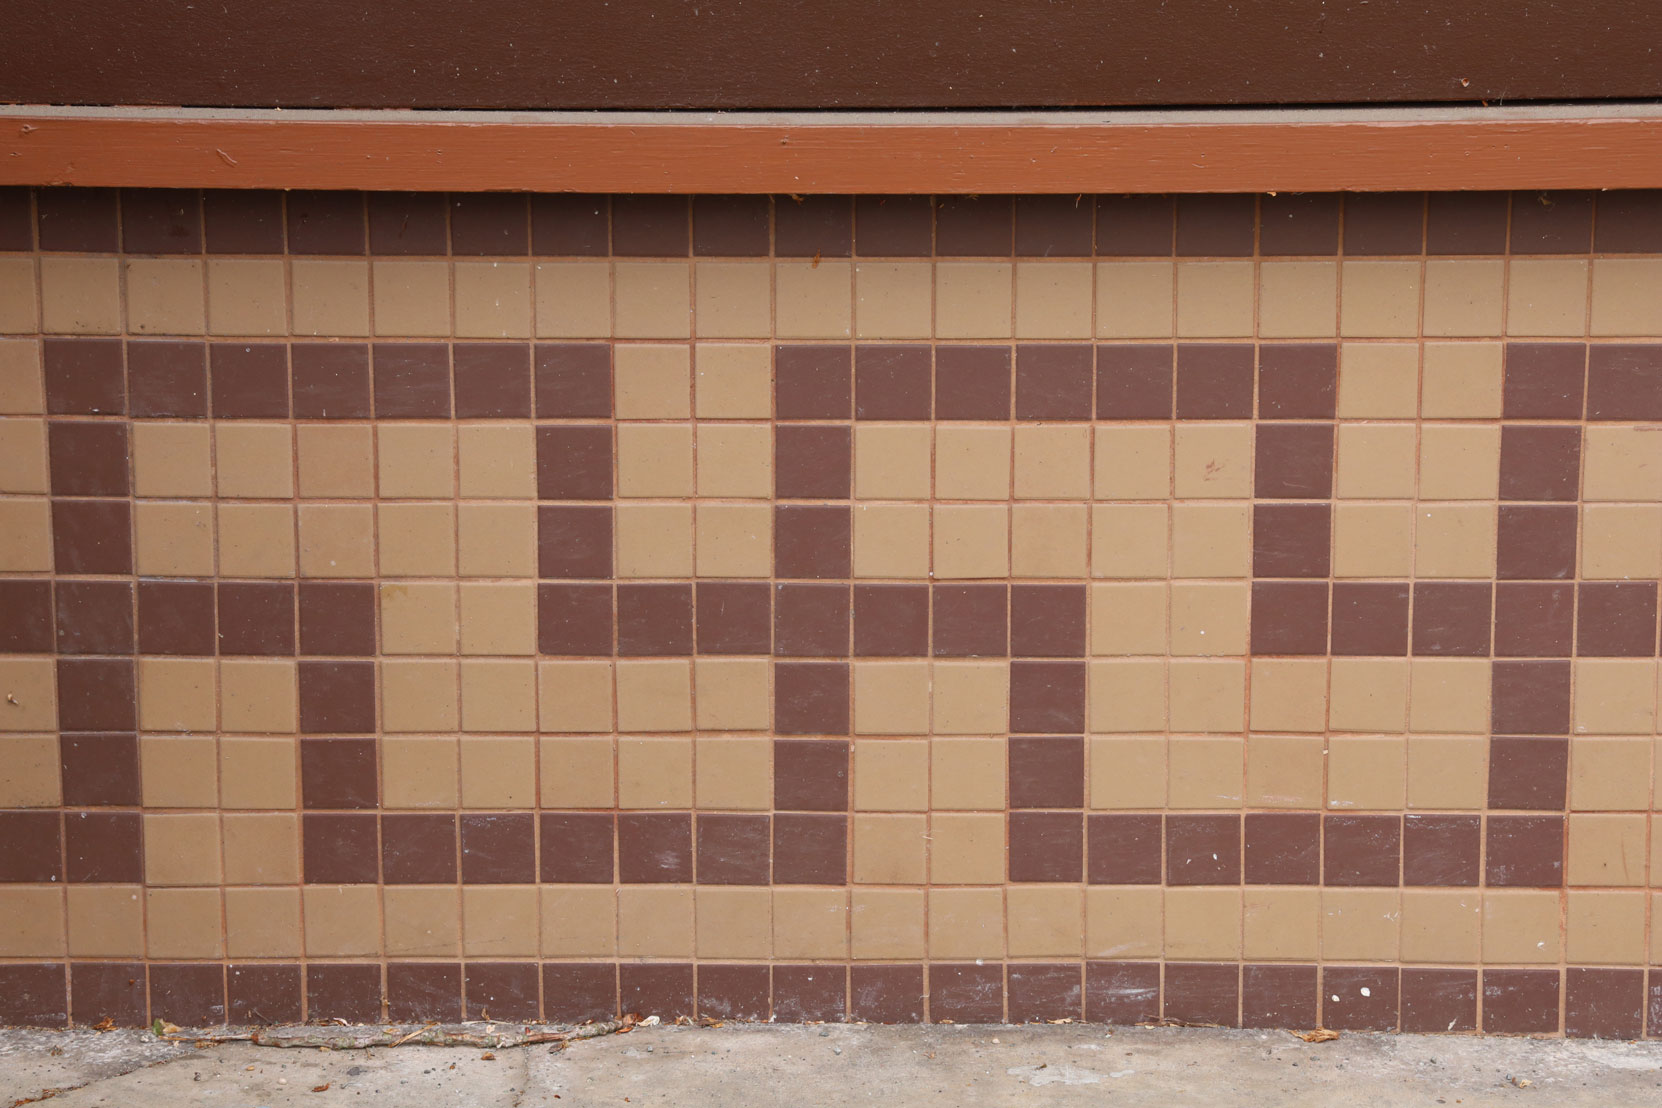 Swastika design in tile on the front of the Travellers Hotel, 422 1st Avenue. This design has nothing to do with the Nazi symbol.